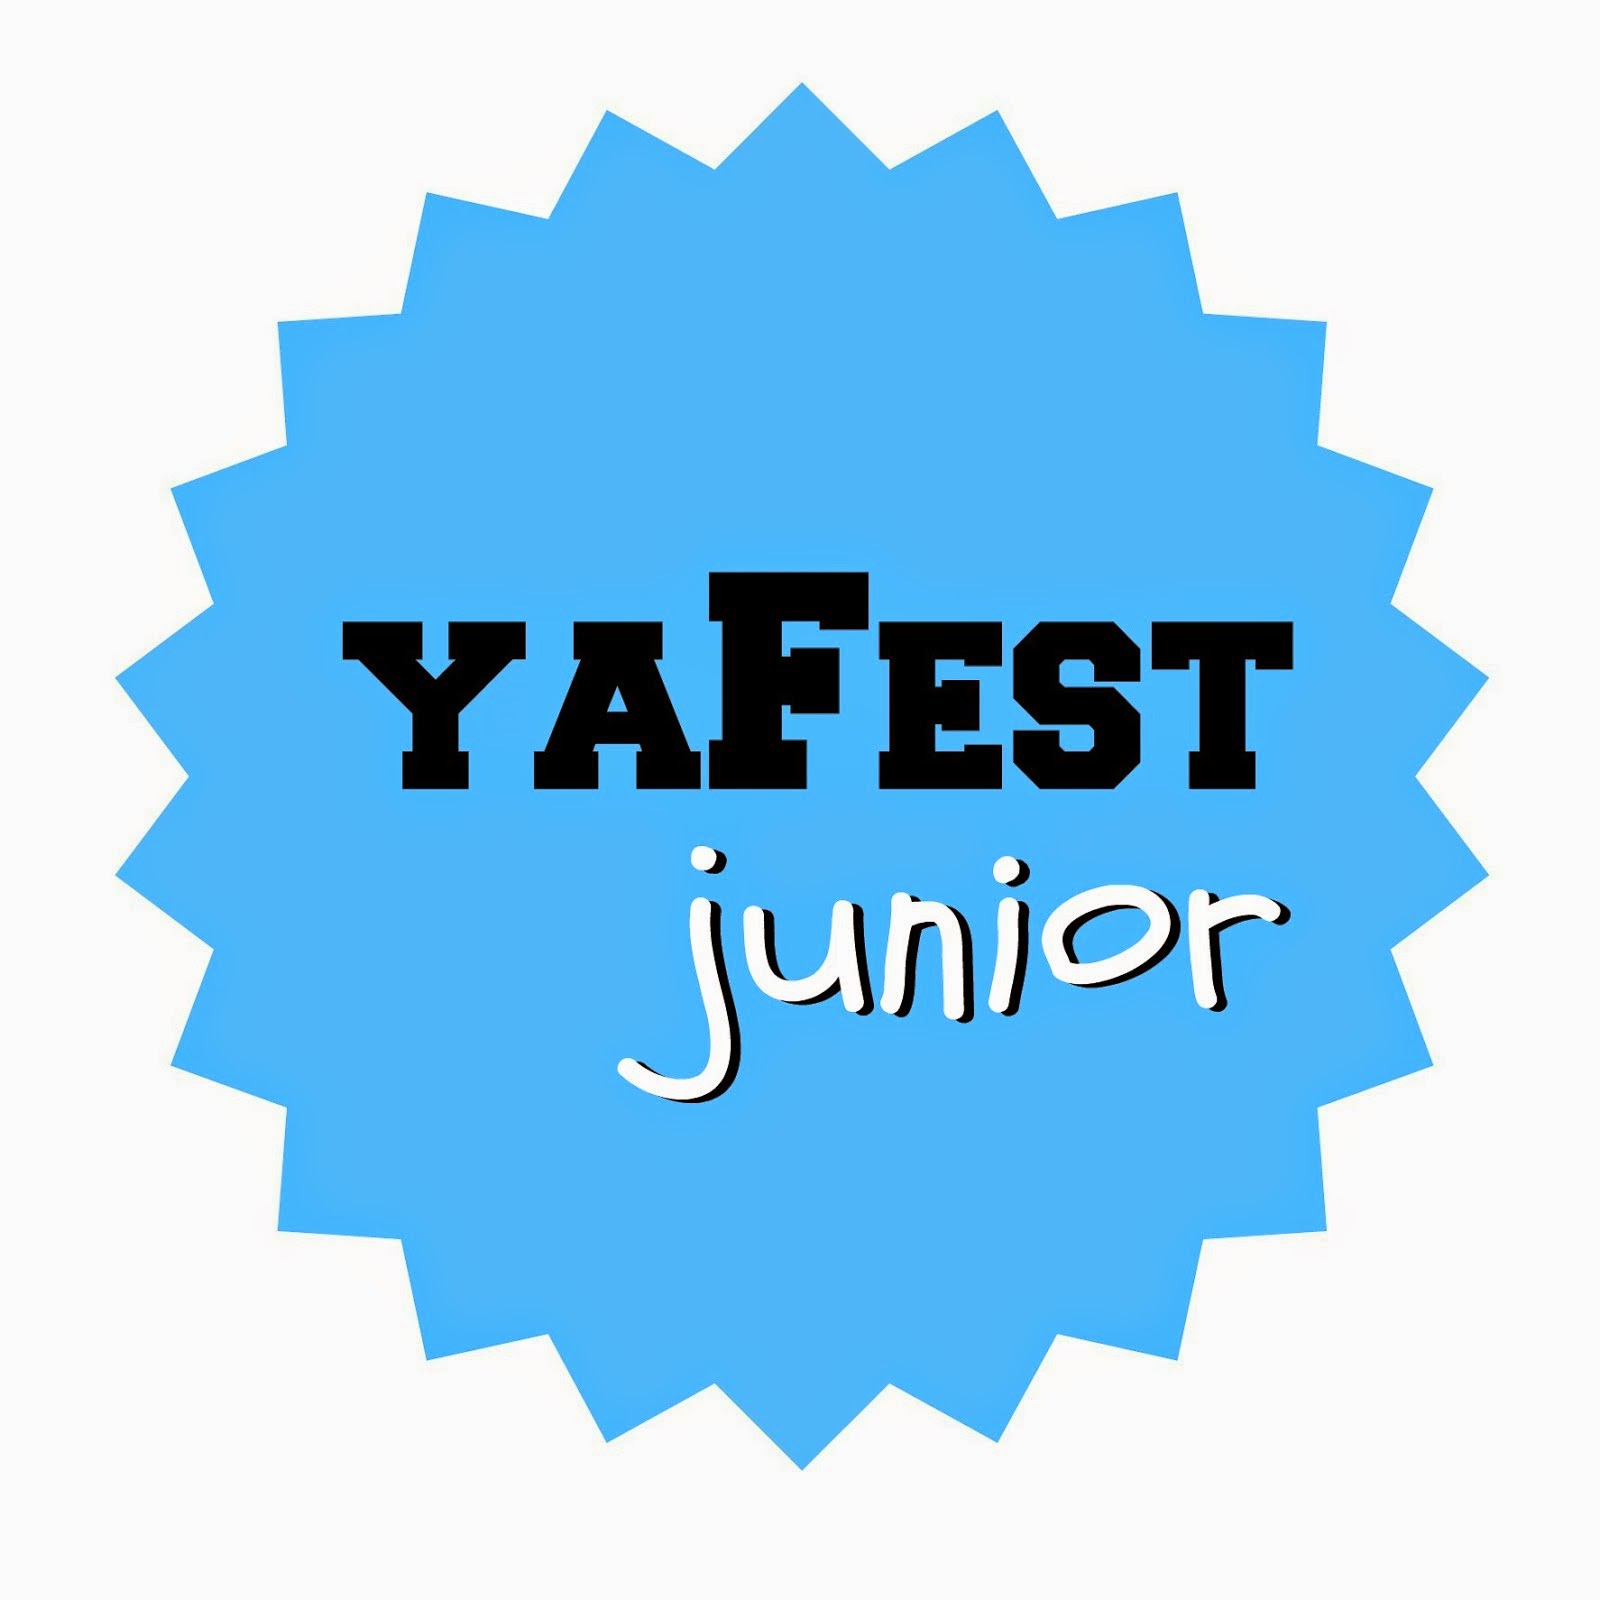 YA FEST JUNIOR: April 25, 2015